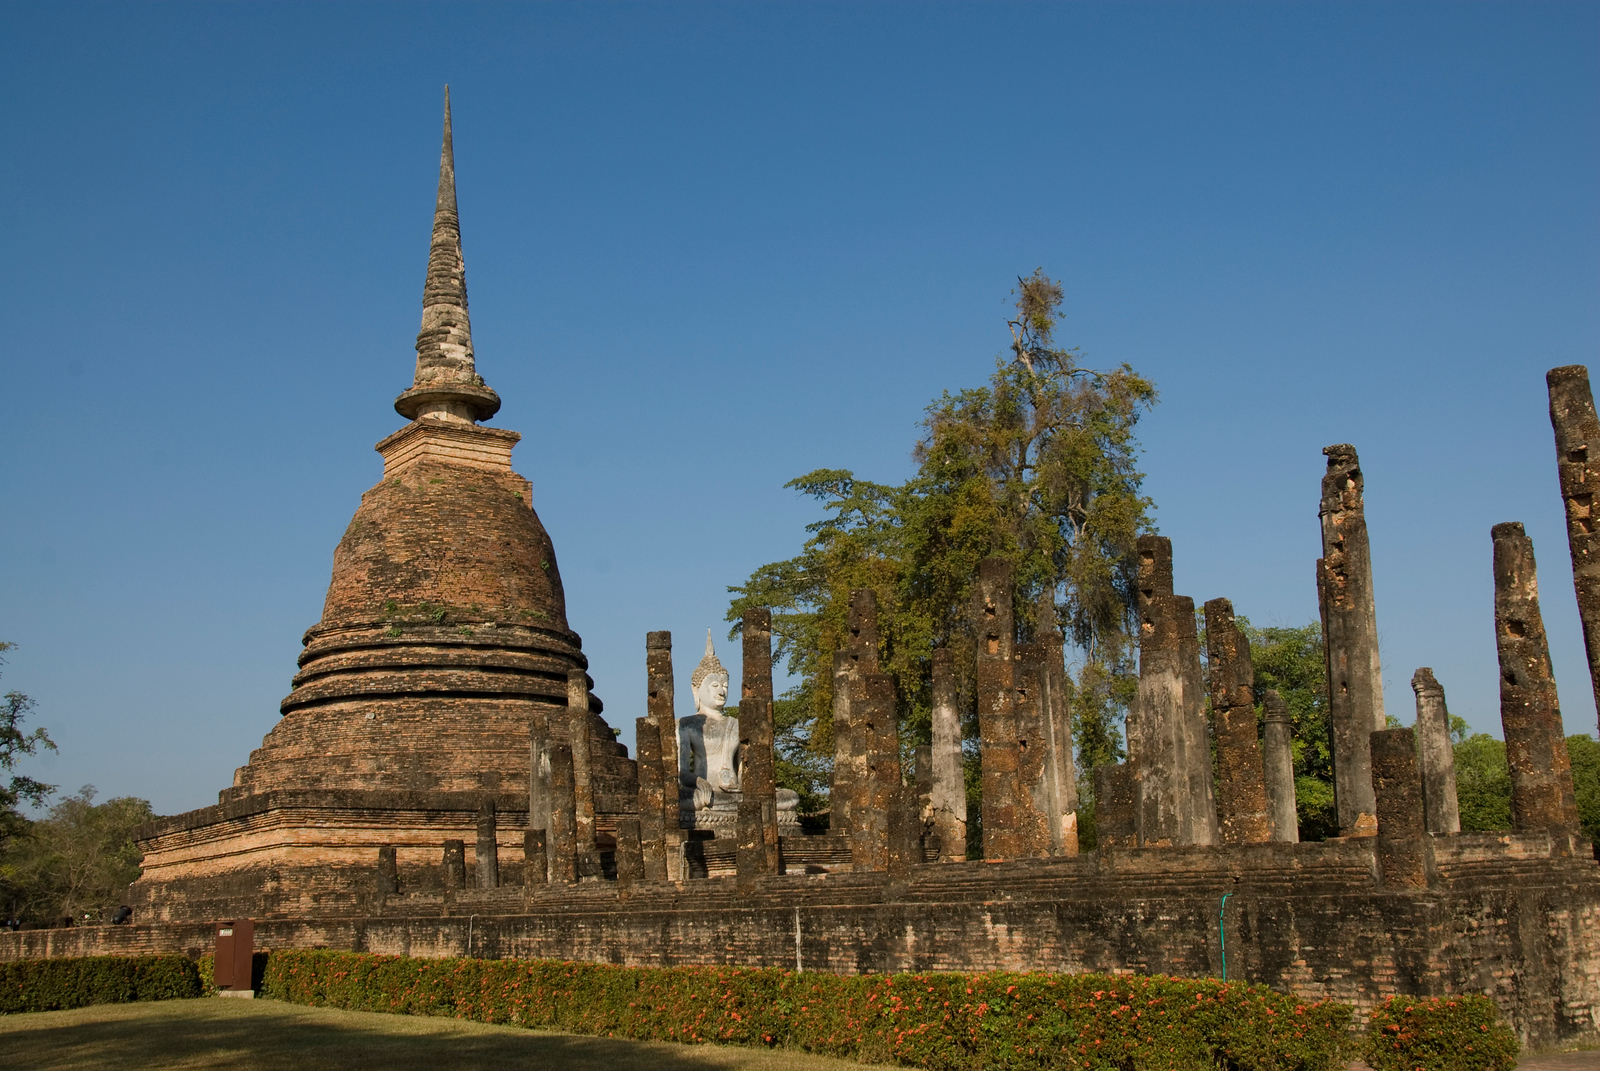 Historic Town of Sukhothai and Associated Historic Towns UNESCO World Heritage Site, Thailand